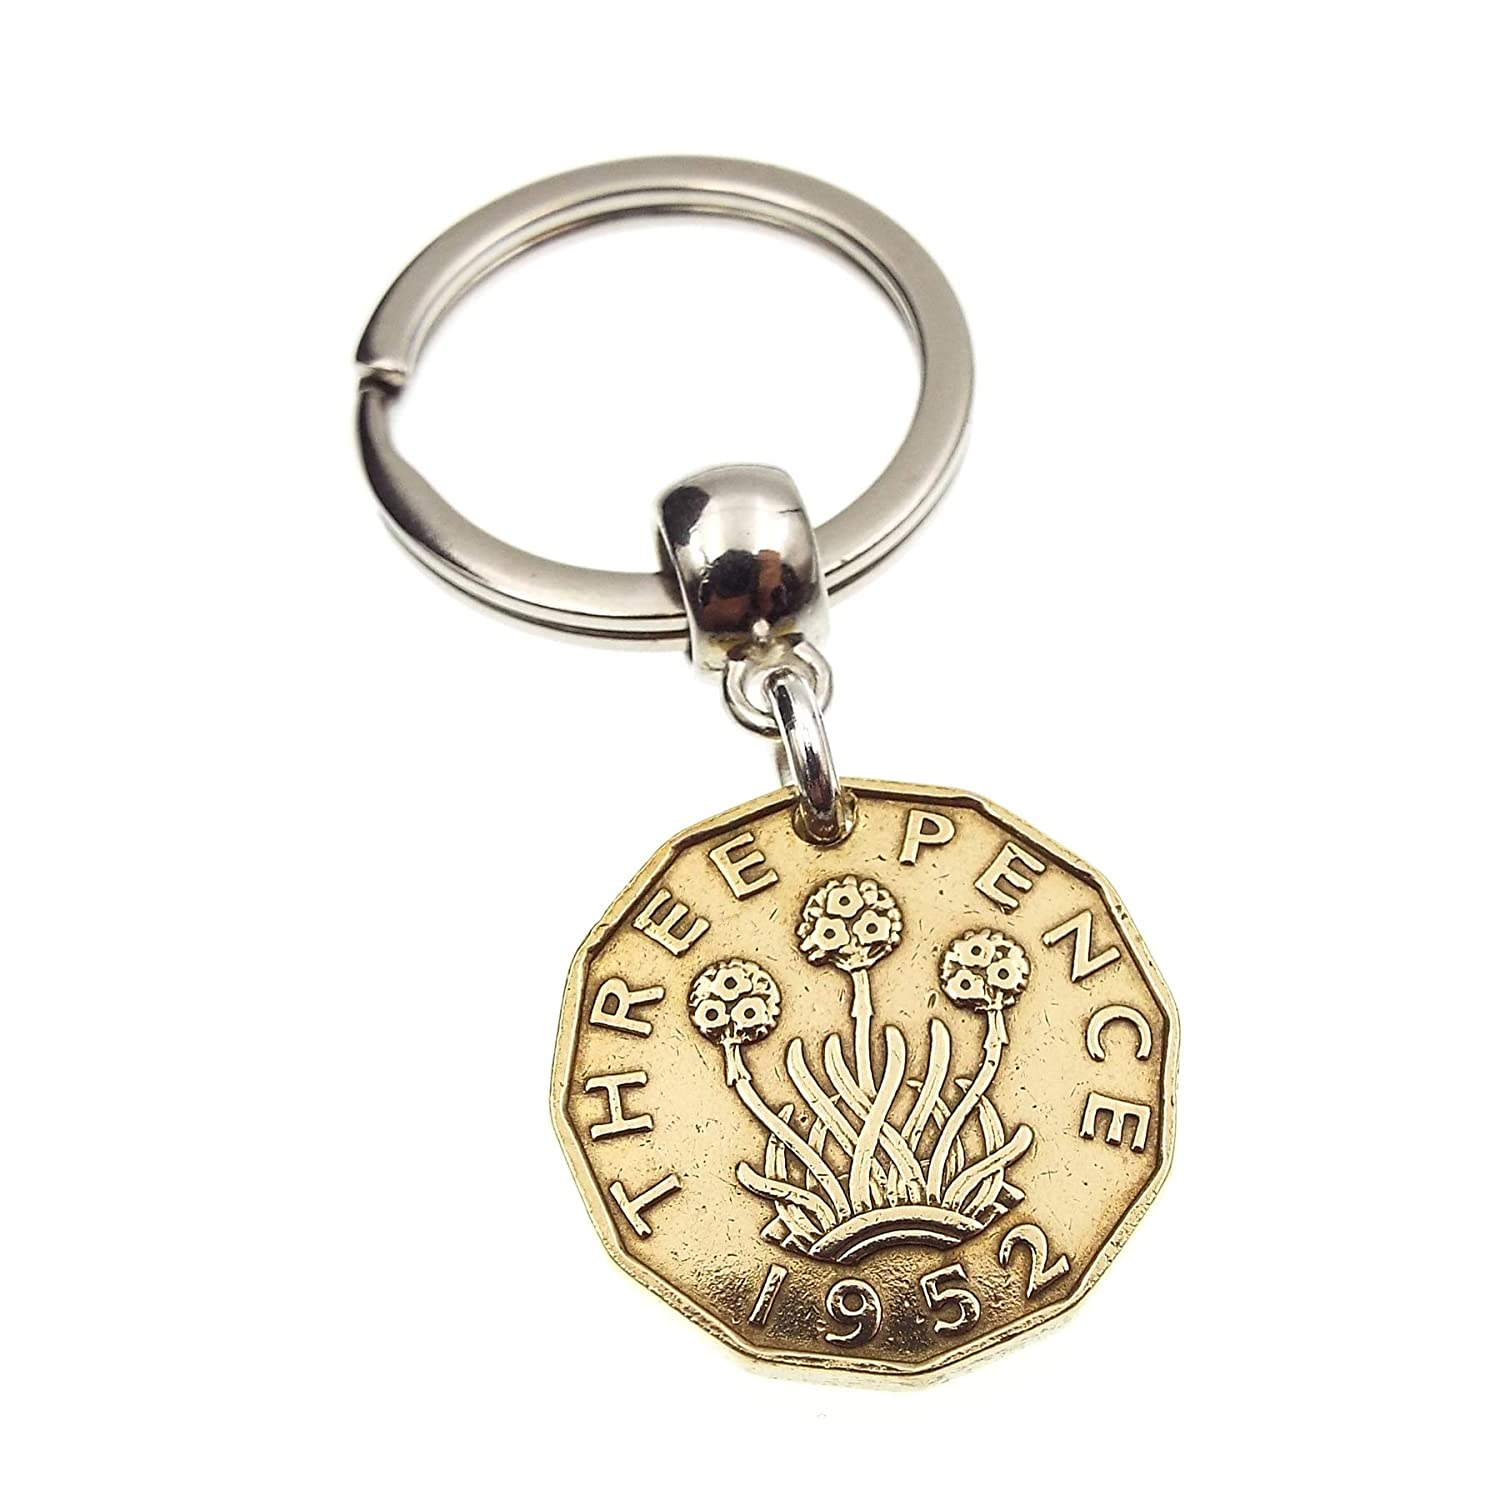 A Silver Dream 1952 Brass Threepence Coin Keyring